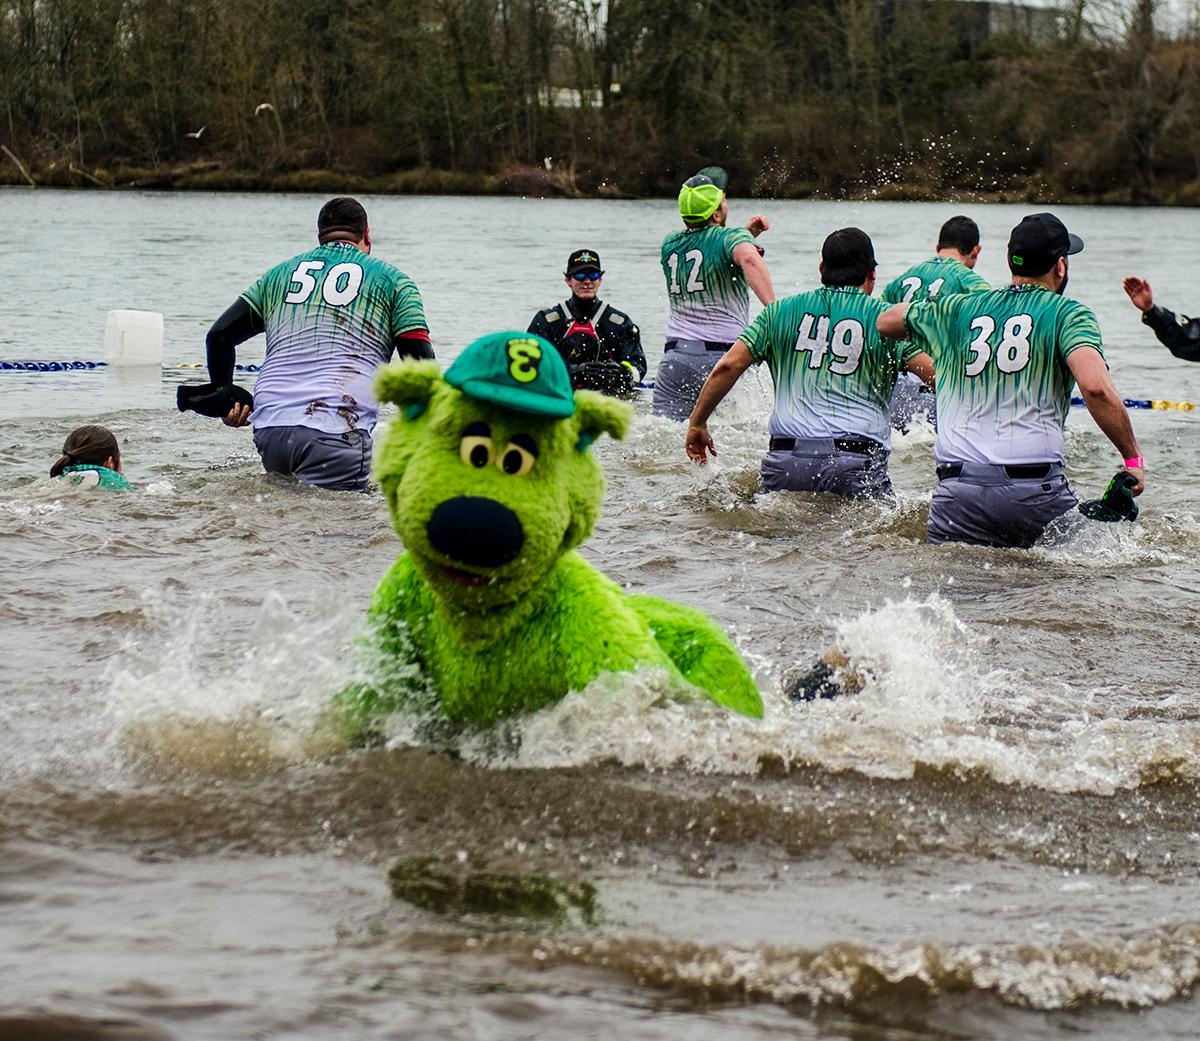 The Eugene Emerald baseball team taking the plunge.� Plungers and onlookers gather for the annual Special Olympics Polar Plunge at Maurie Jacobs Park in Eugene. With over 250 plungers diving into the Willamette River, participants look to surpass $412,000, which was last years total. Eugene is just one of the five locations around Oregon that hosts the plunge, but is a nationwide event. The funds raised by todayâ��s plunge will go towards assisting Oregon Special Olympic teams. Photo by Kara Jenness, Oregon News Lab.